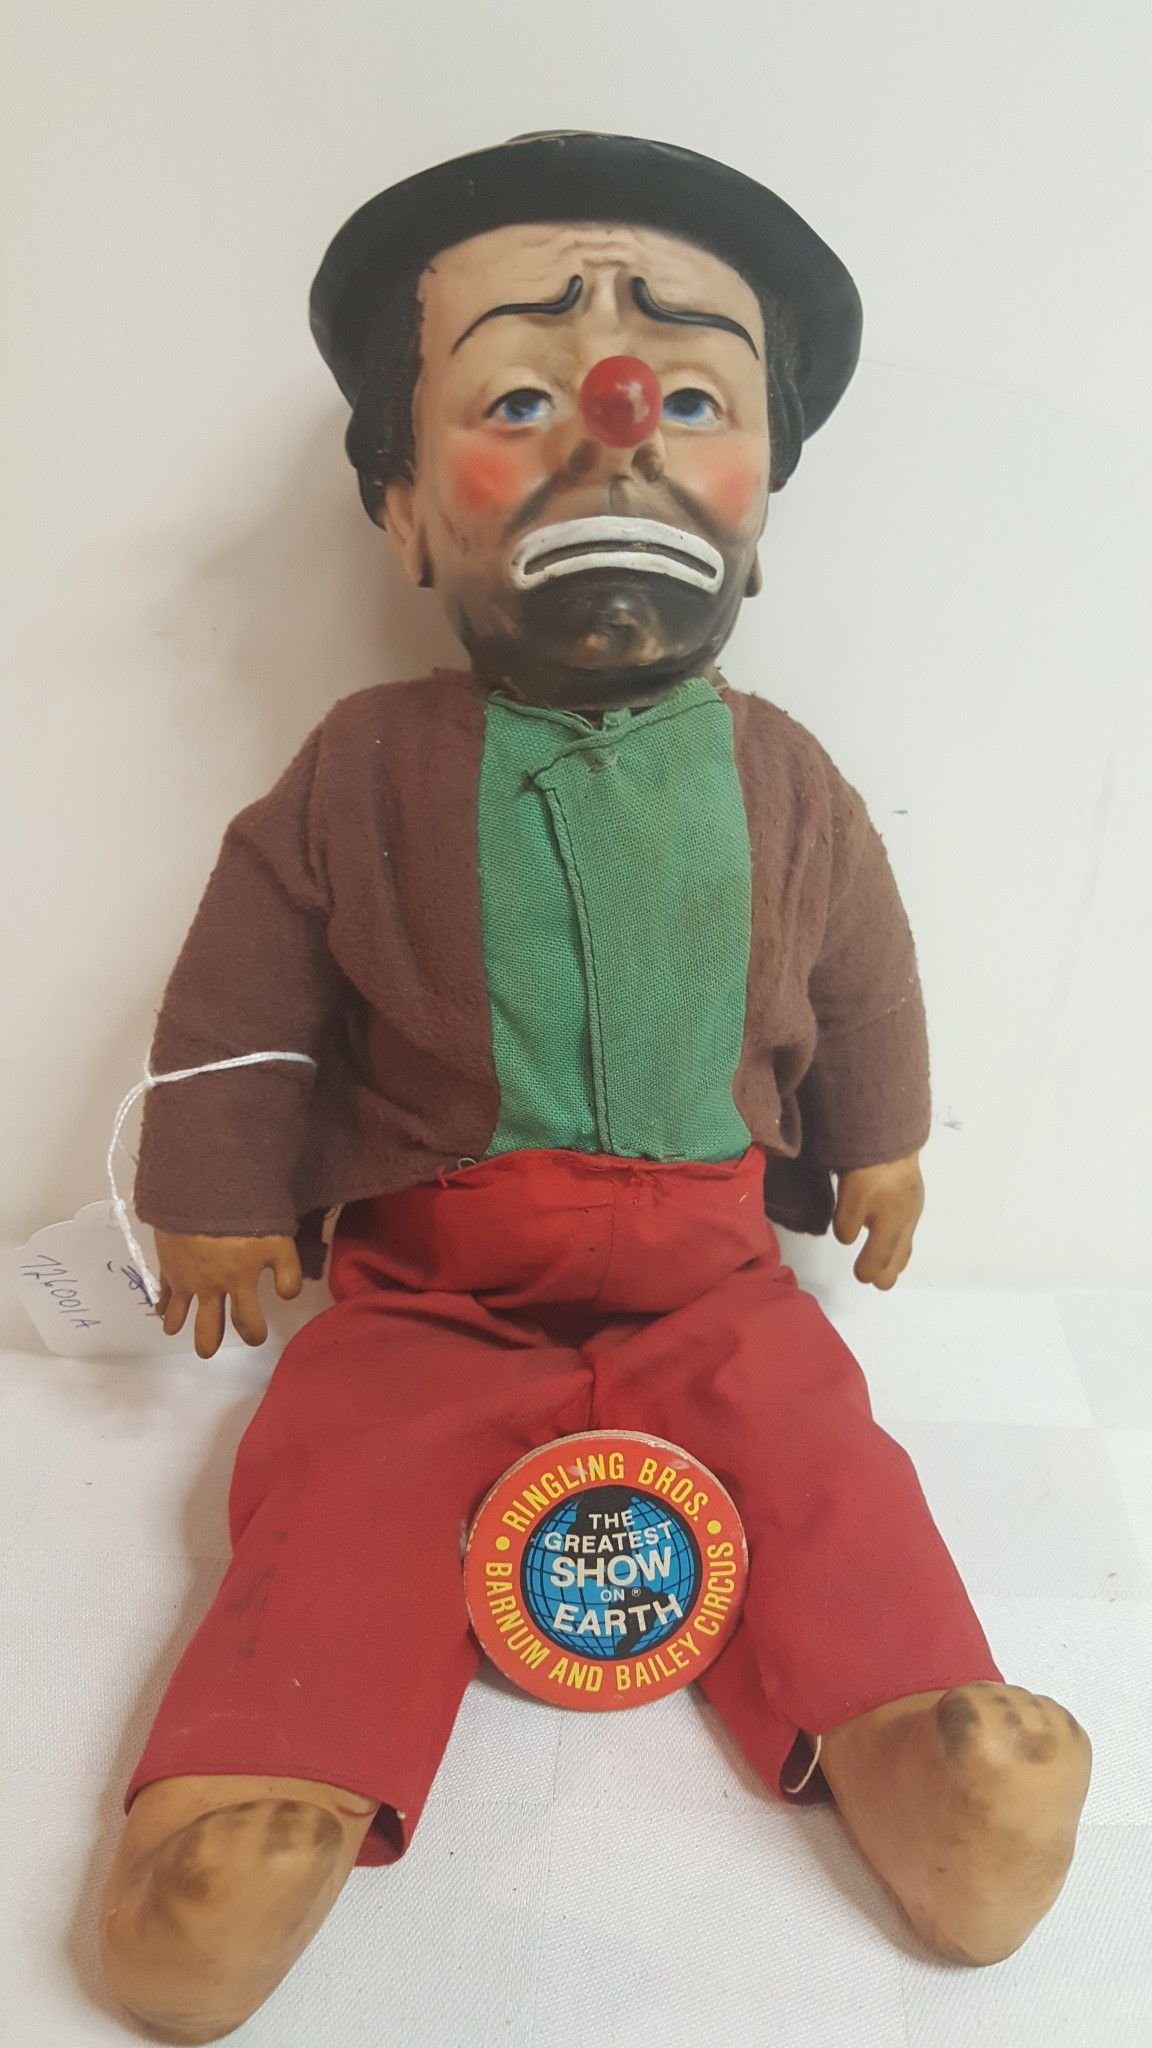 By Baby Barry Toy Co. NY soft plastic body, all items are